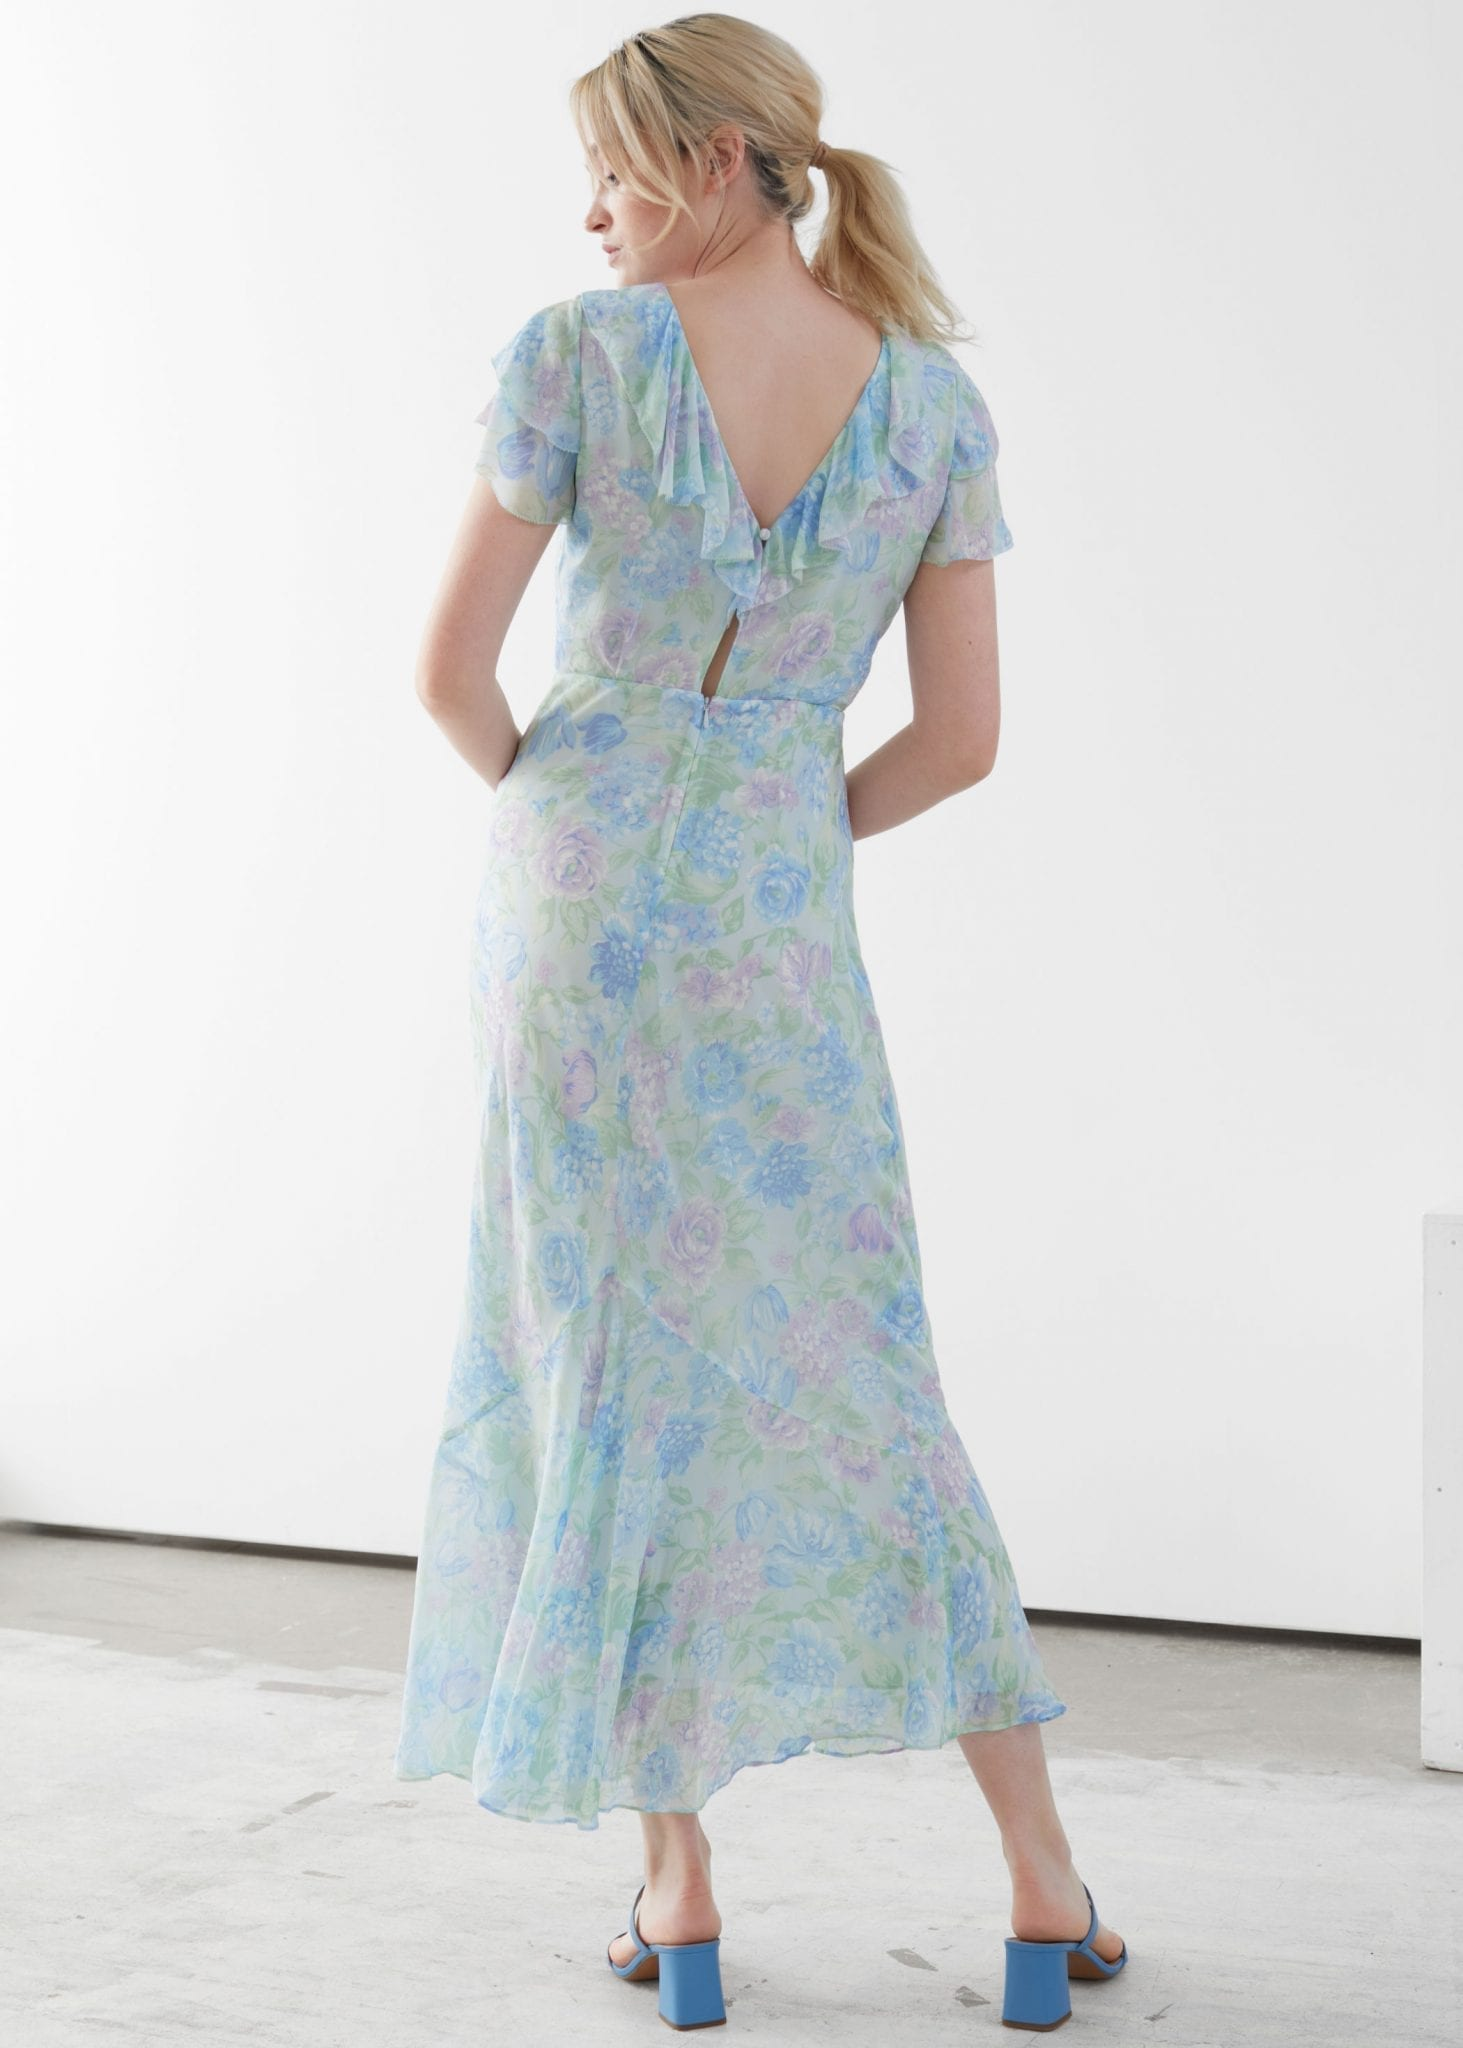 OTHER STORIES Bias Cut Ruffled Maxi Dress